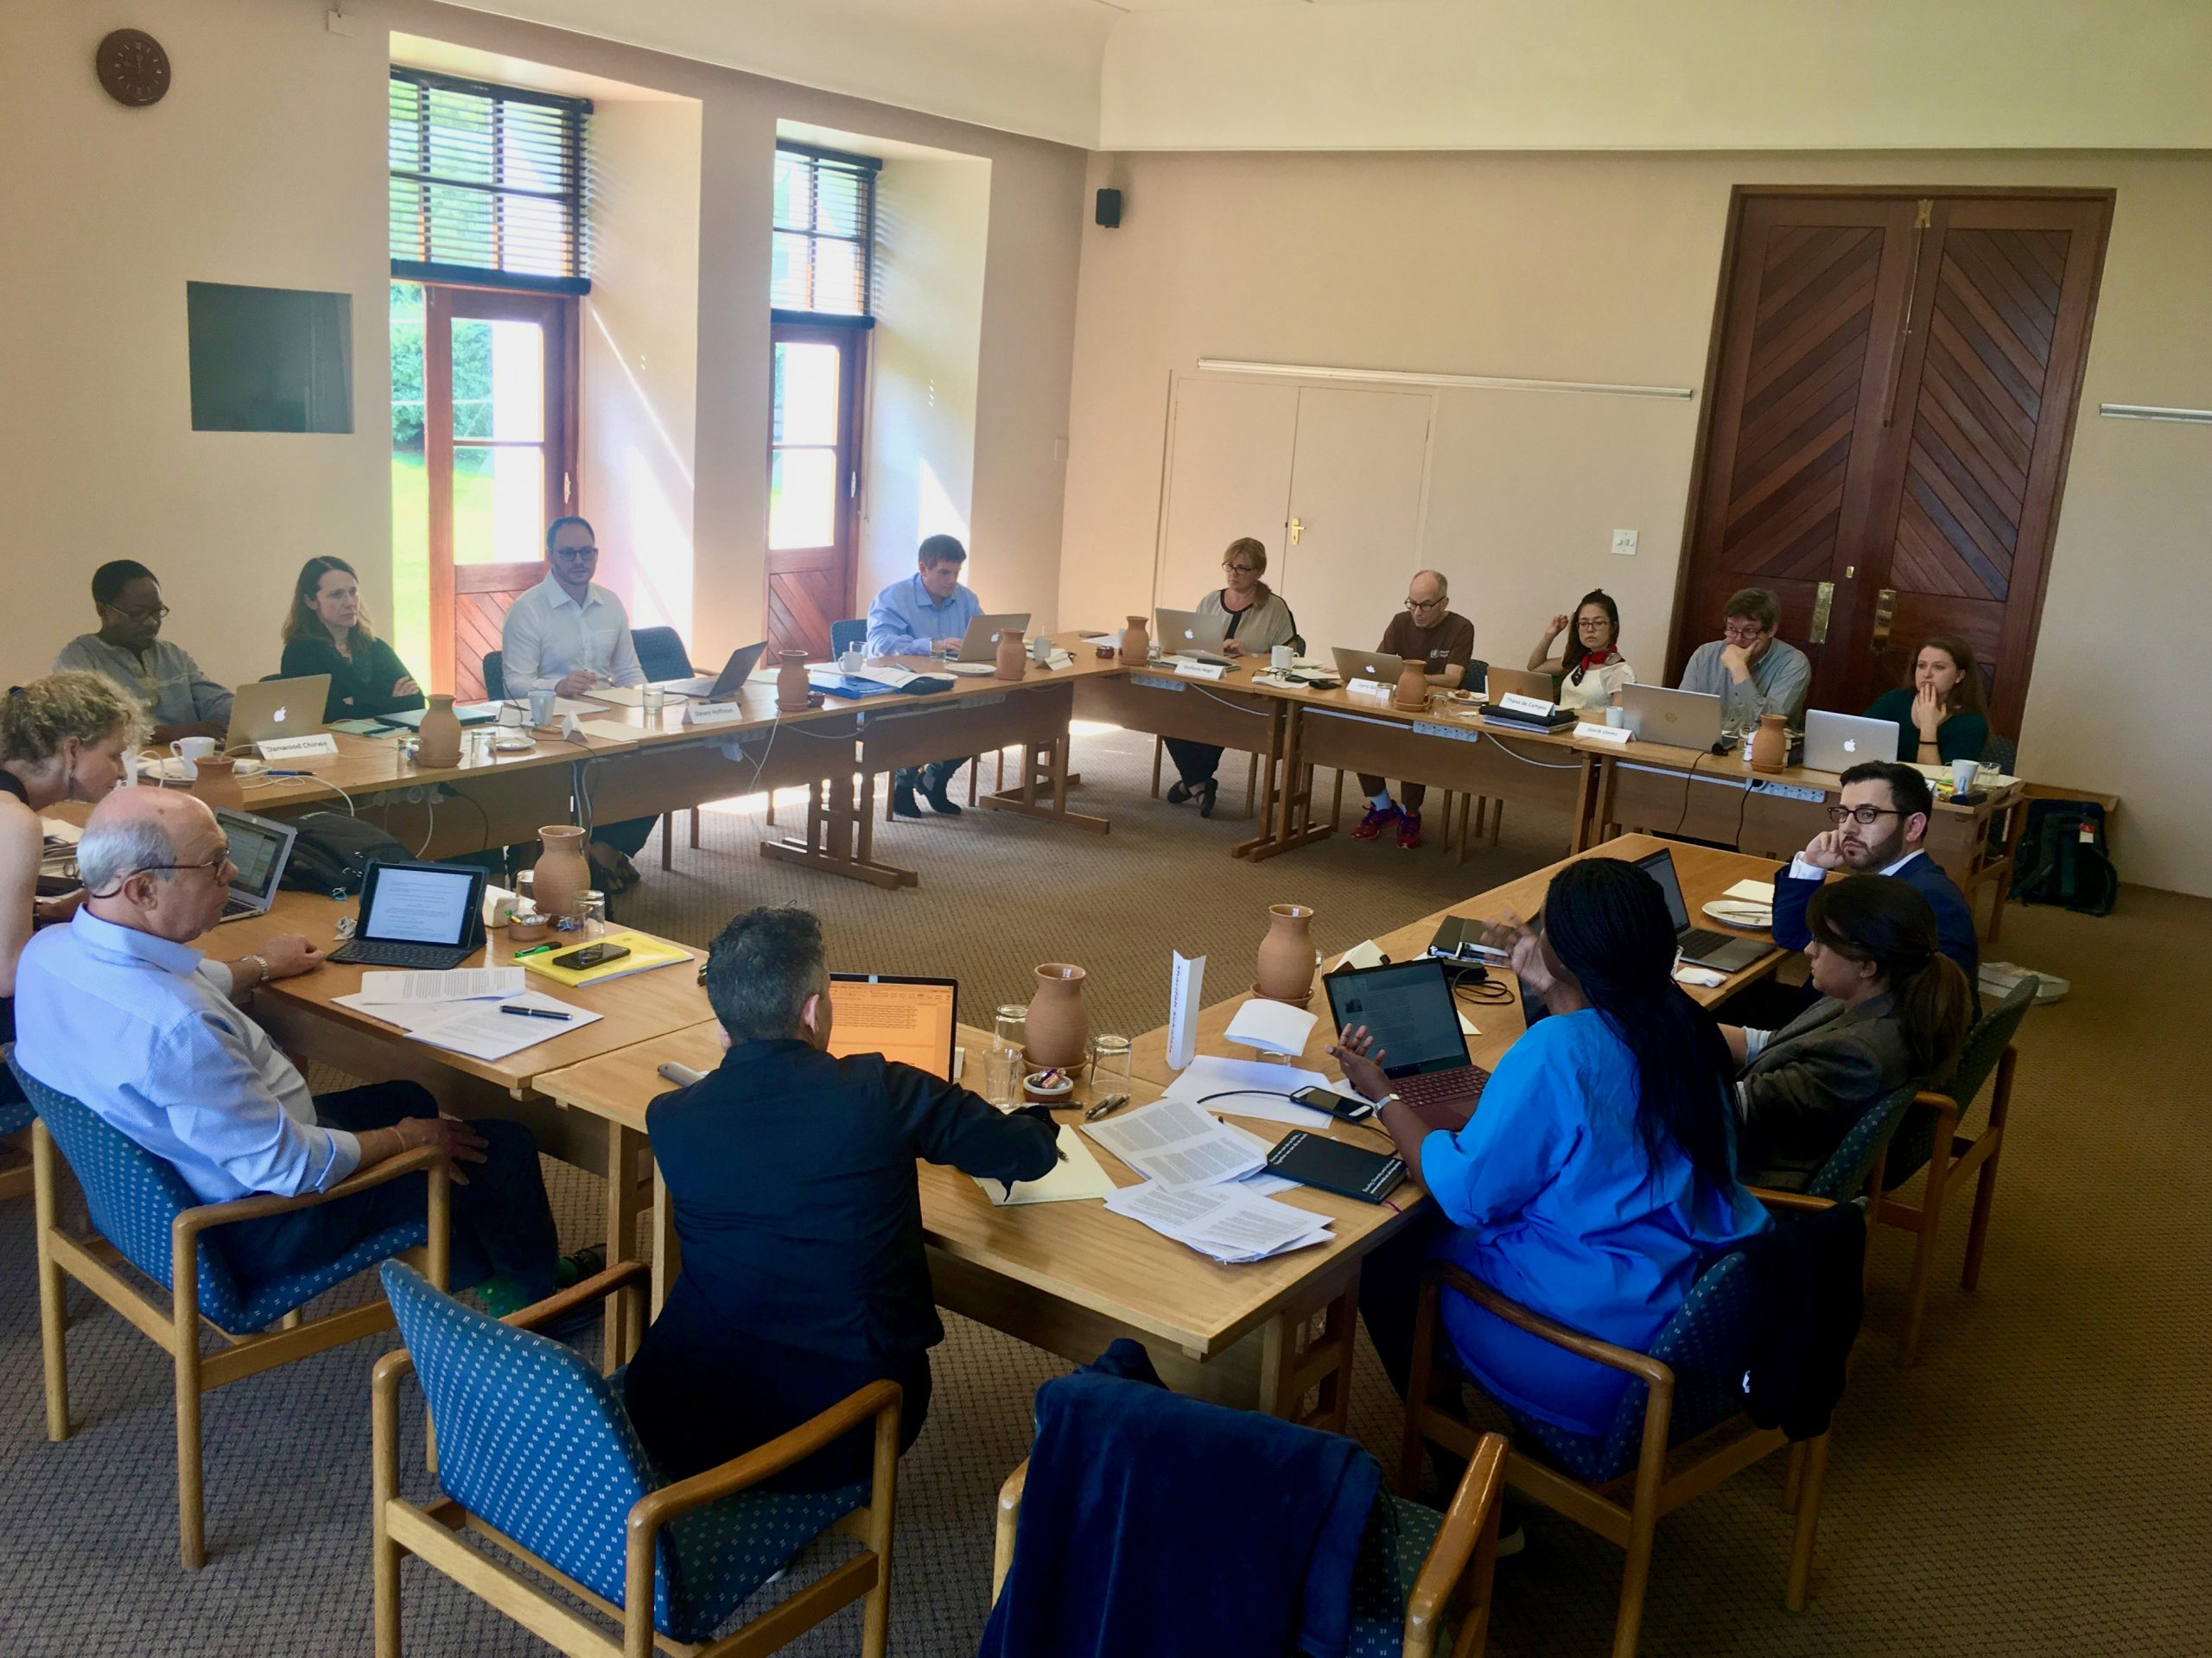 Benjamin Mason Meier (right) discusses law reforms to prevent disease with the Global Health Law Consortium in Stellenbosch, South Africa, in April 2019.